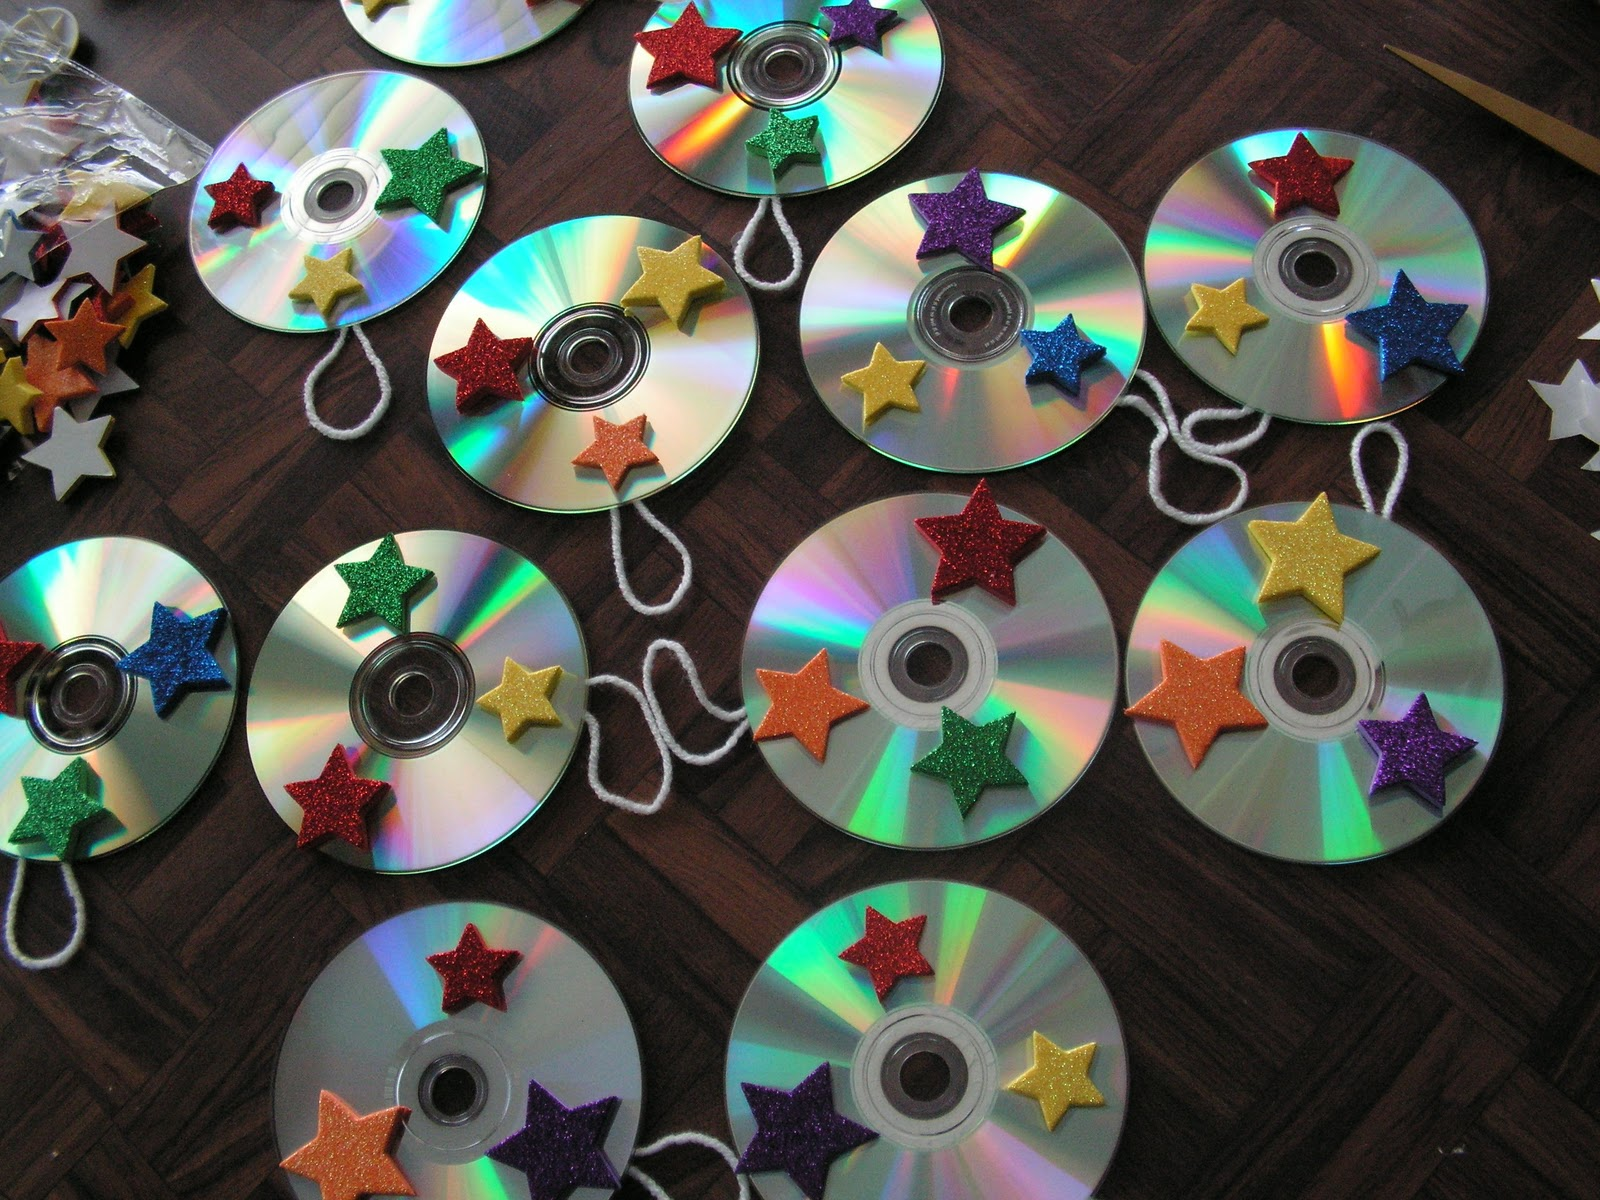 My little one room schoolhouse crafting lesson cd suncatchers - Top uses for old cds and dvds unbounded ideas ...